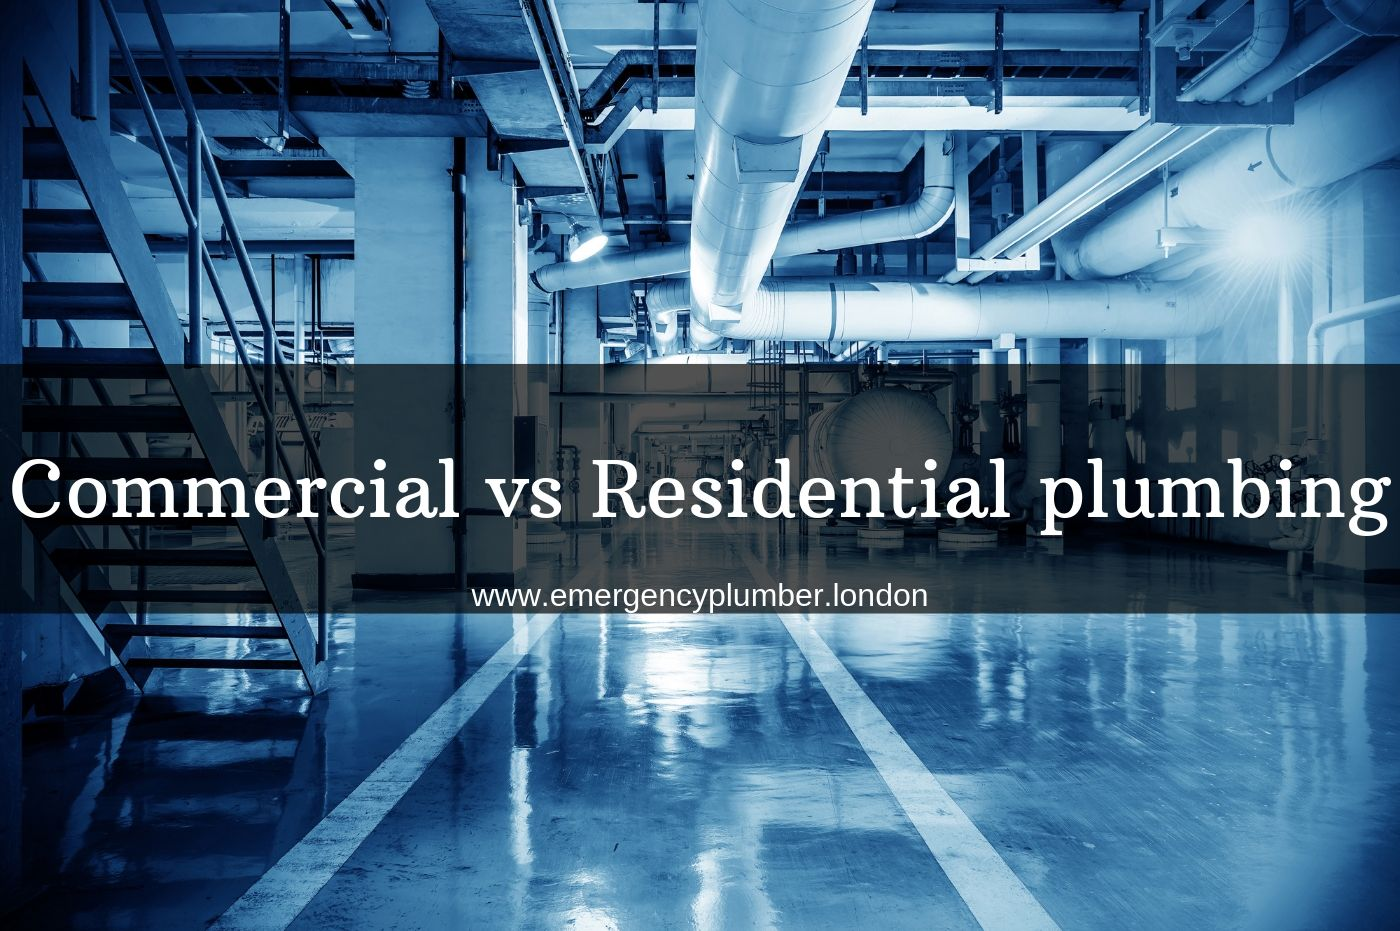 Commercial vs Residential plumbing